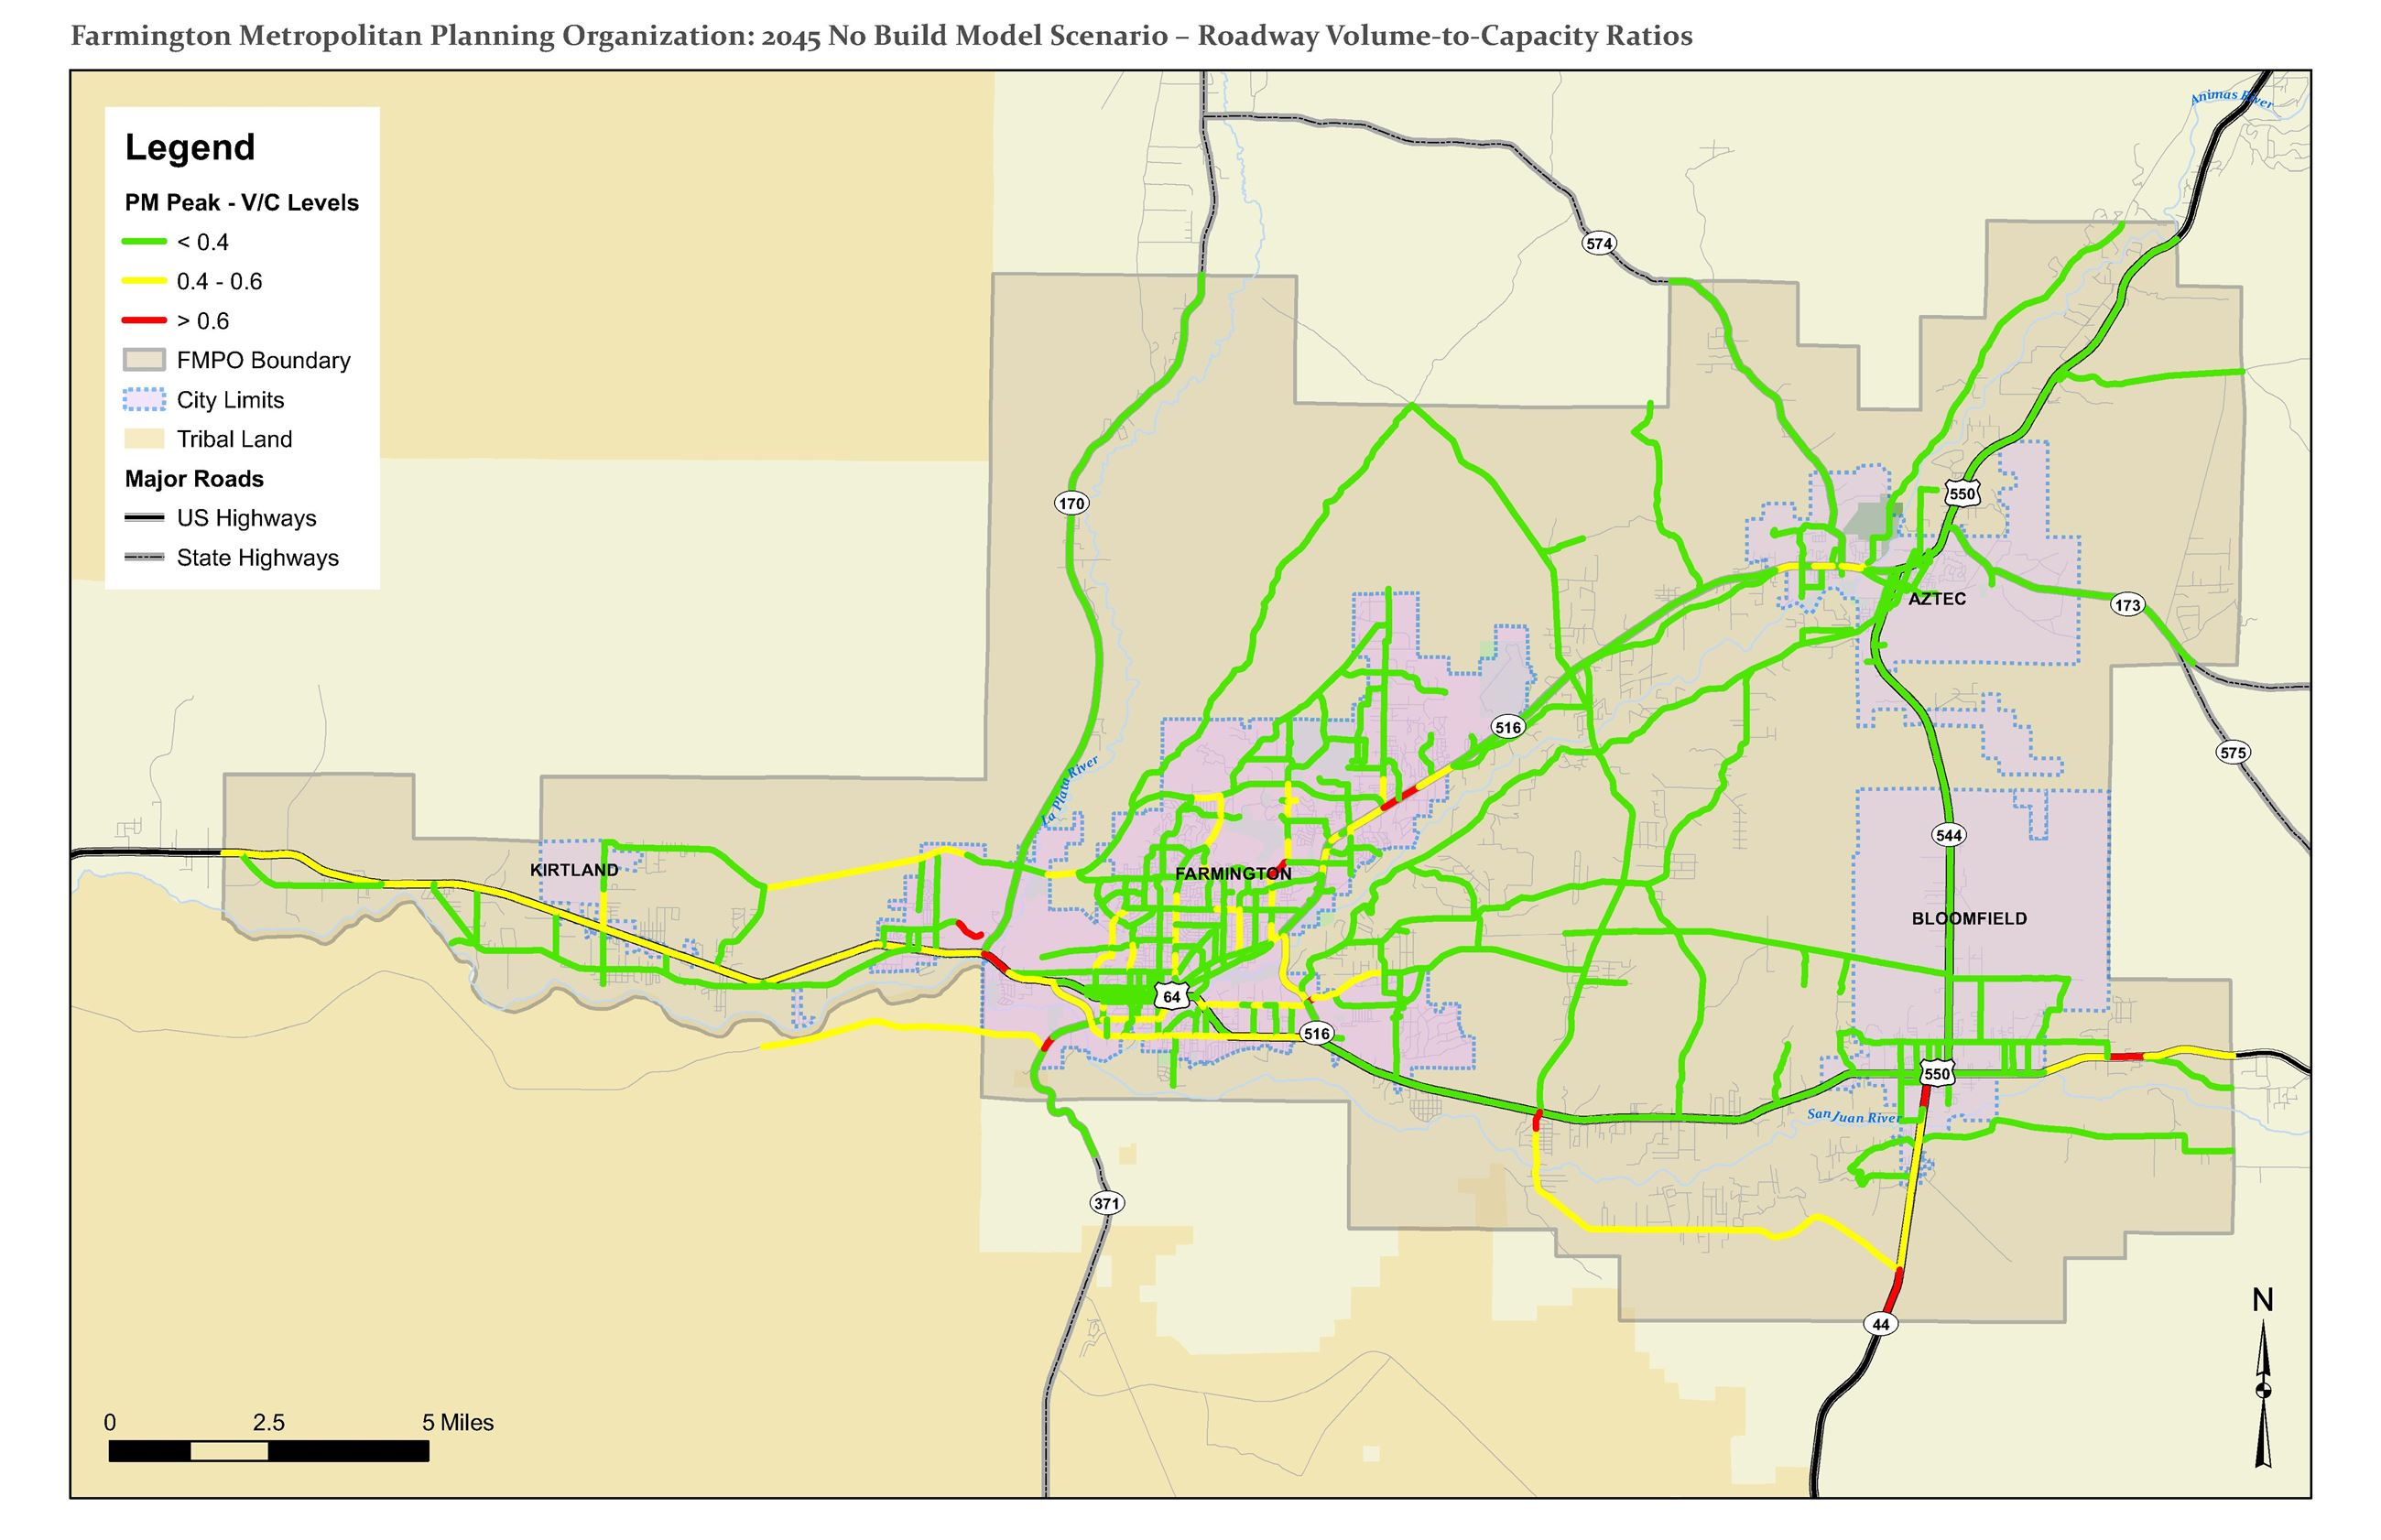 Map - 2045 No Build Model Scenario - Roadway Volume-to-Capacity Ratios Opens in new window